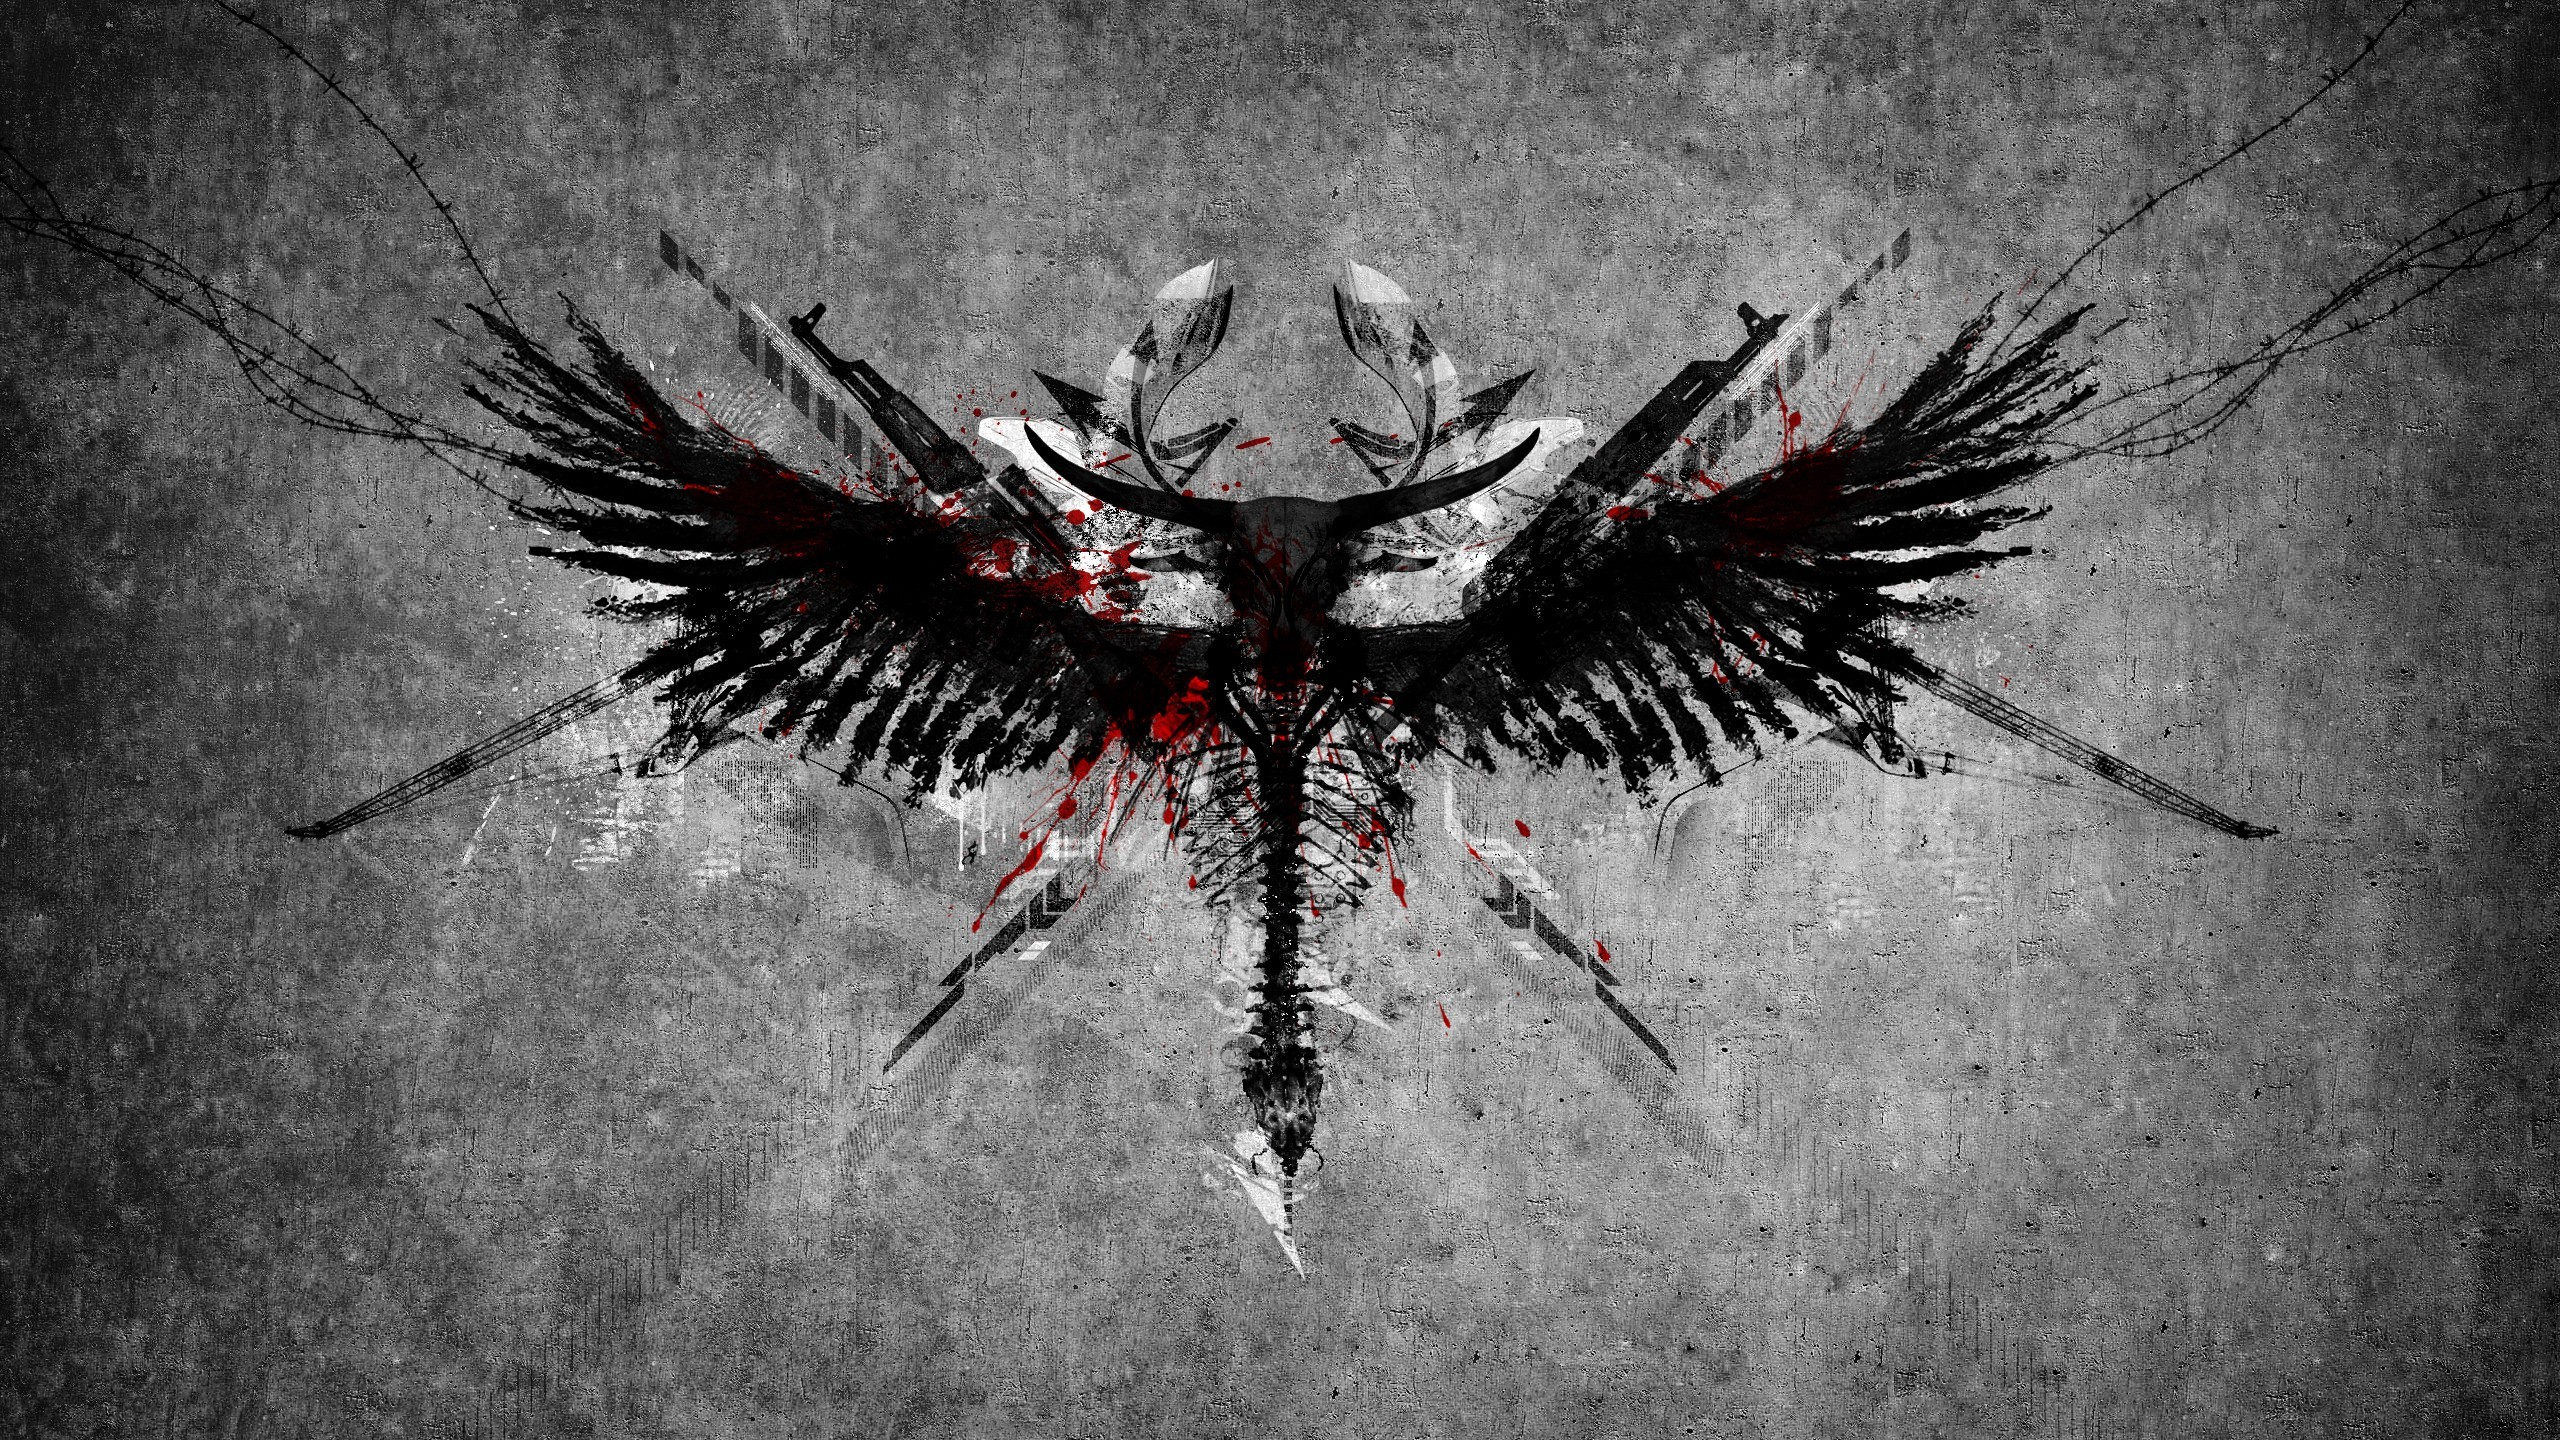 2560x1440 Angel Warrior Symbol wallpaper from Angels wallpapers